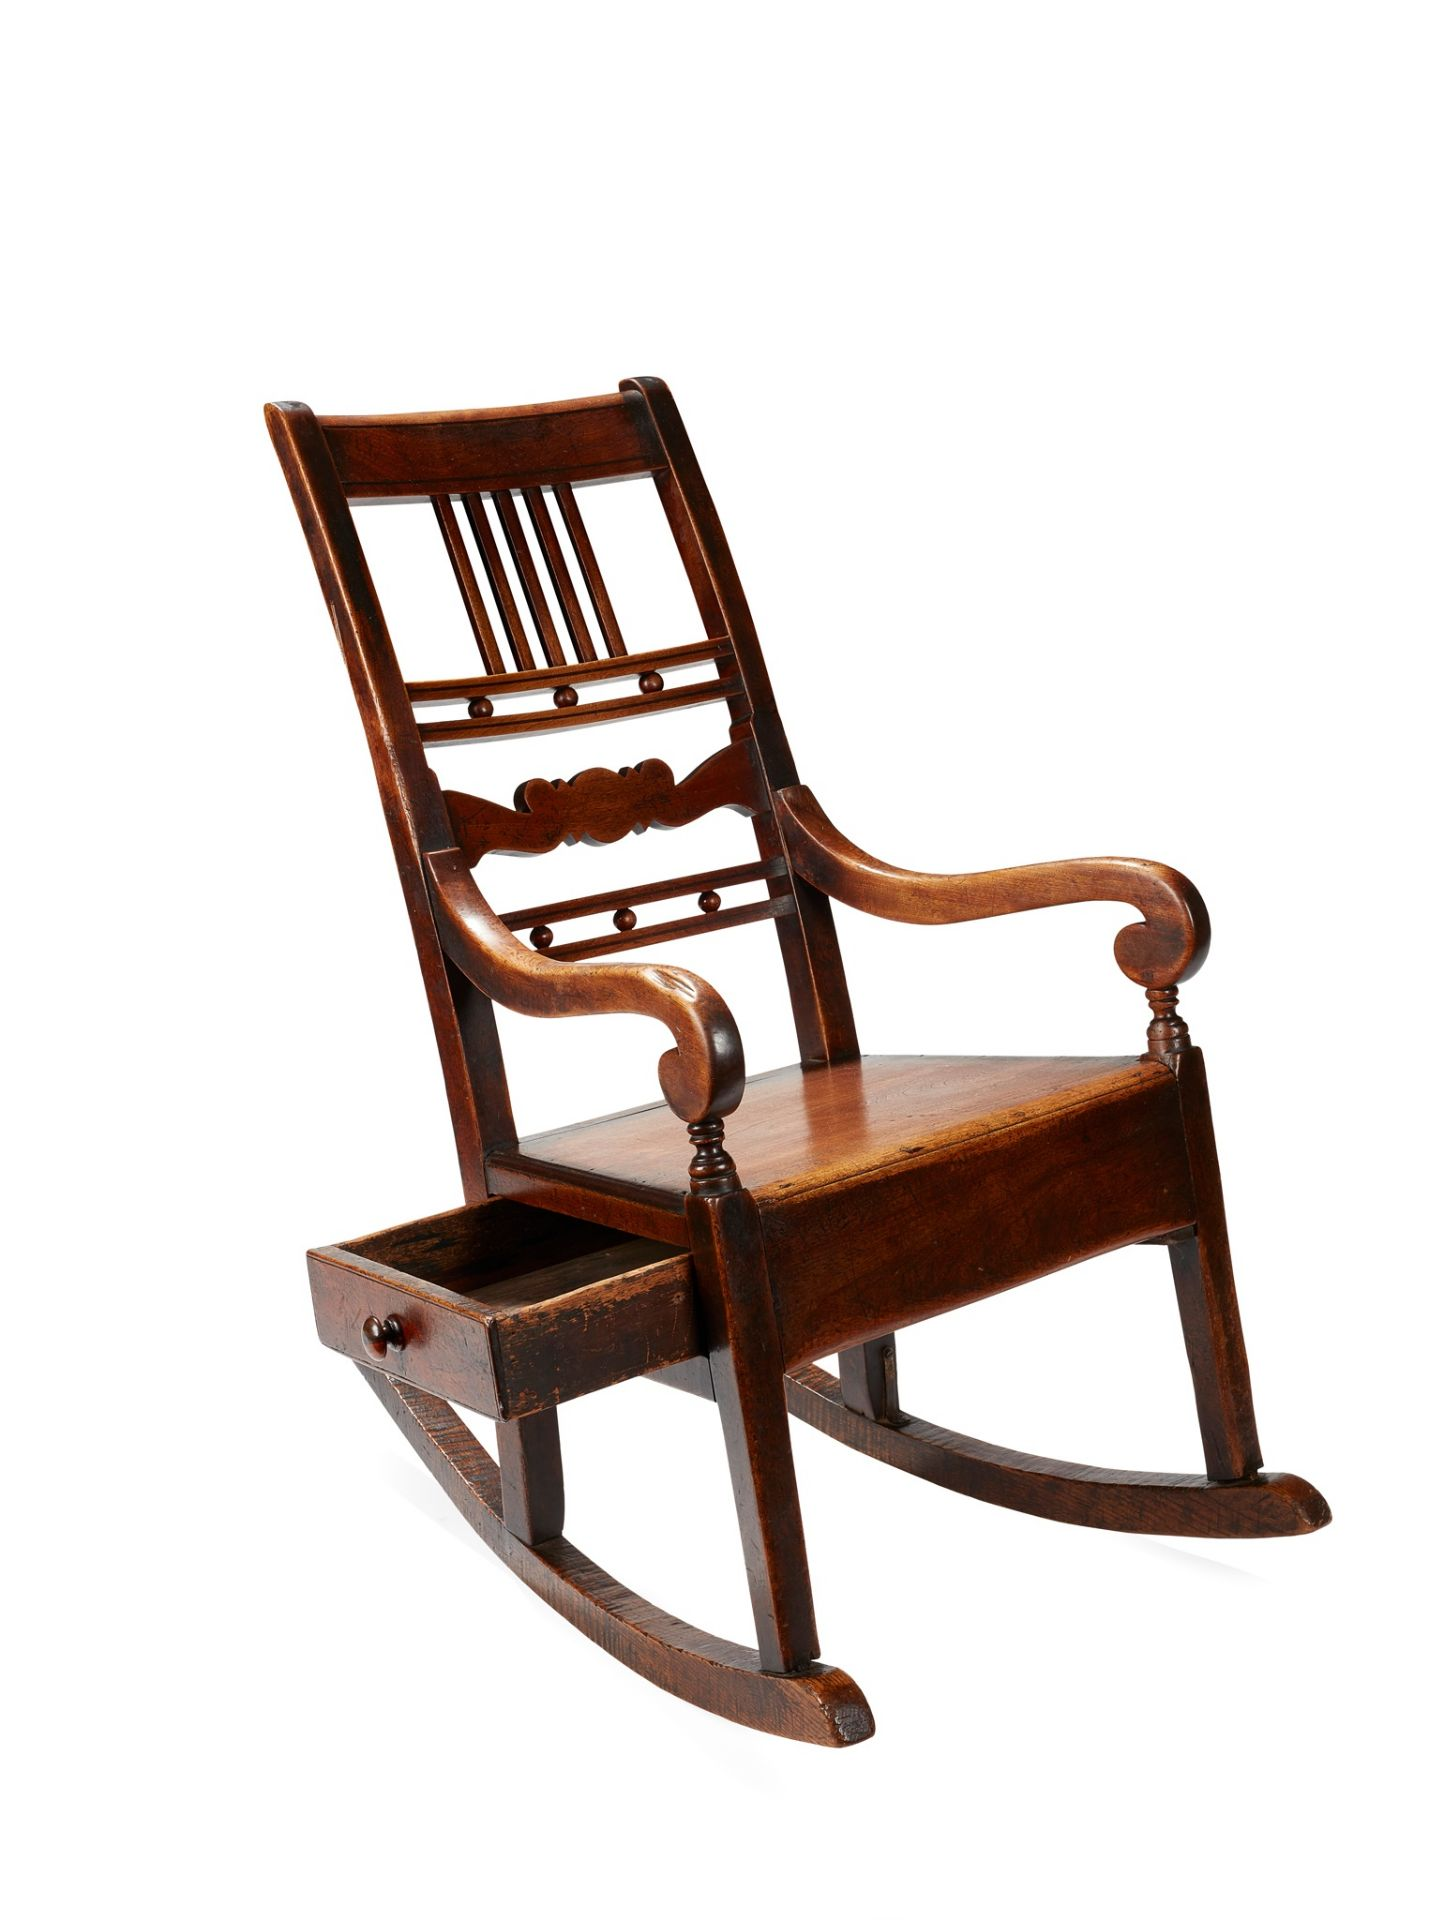 A SCOTTISH PROVINCIAL ROCKING CHAIR CIRCA 1850 - Image 2 of 2